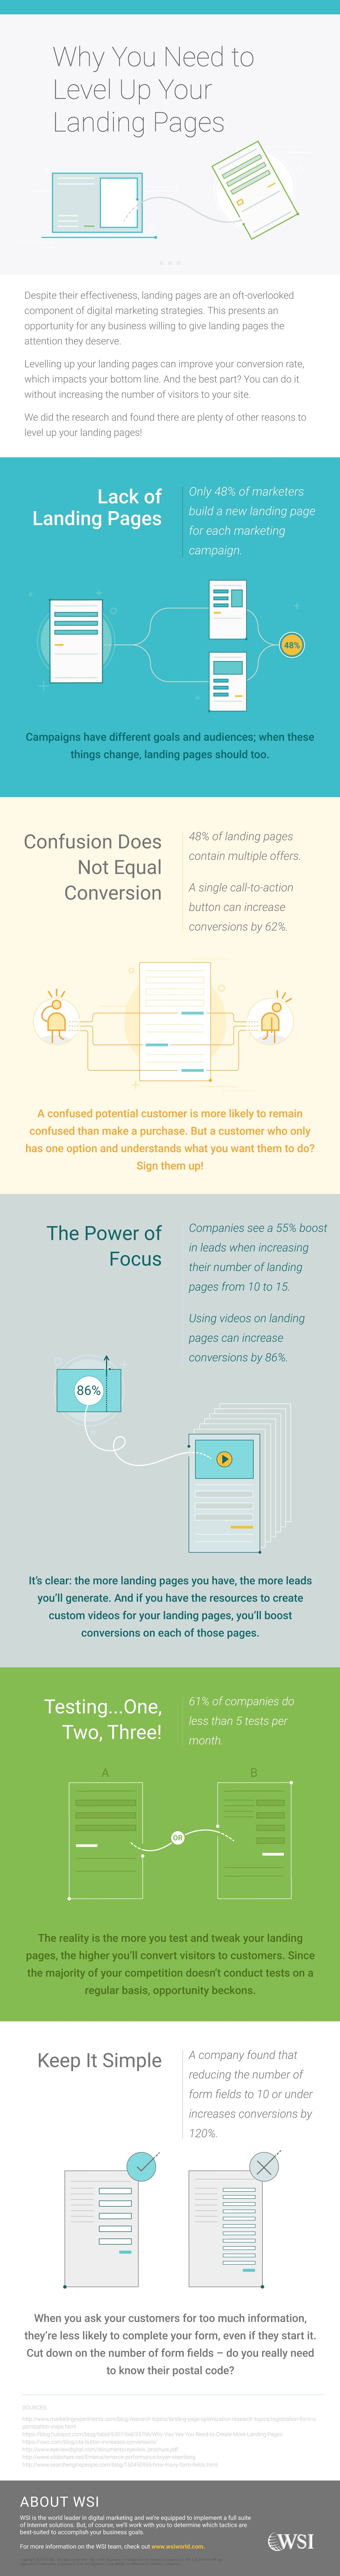 Why You Need to Level up Your Landing Pages - #infographic